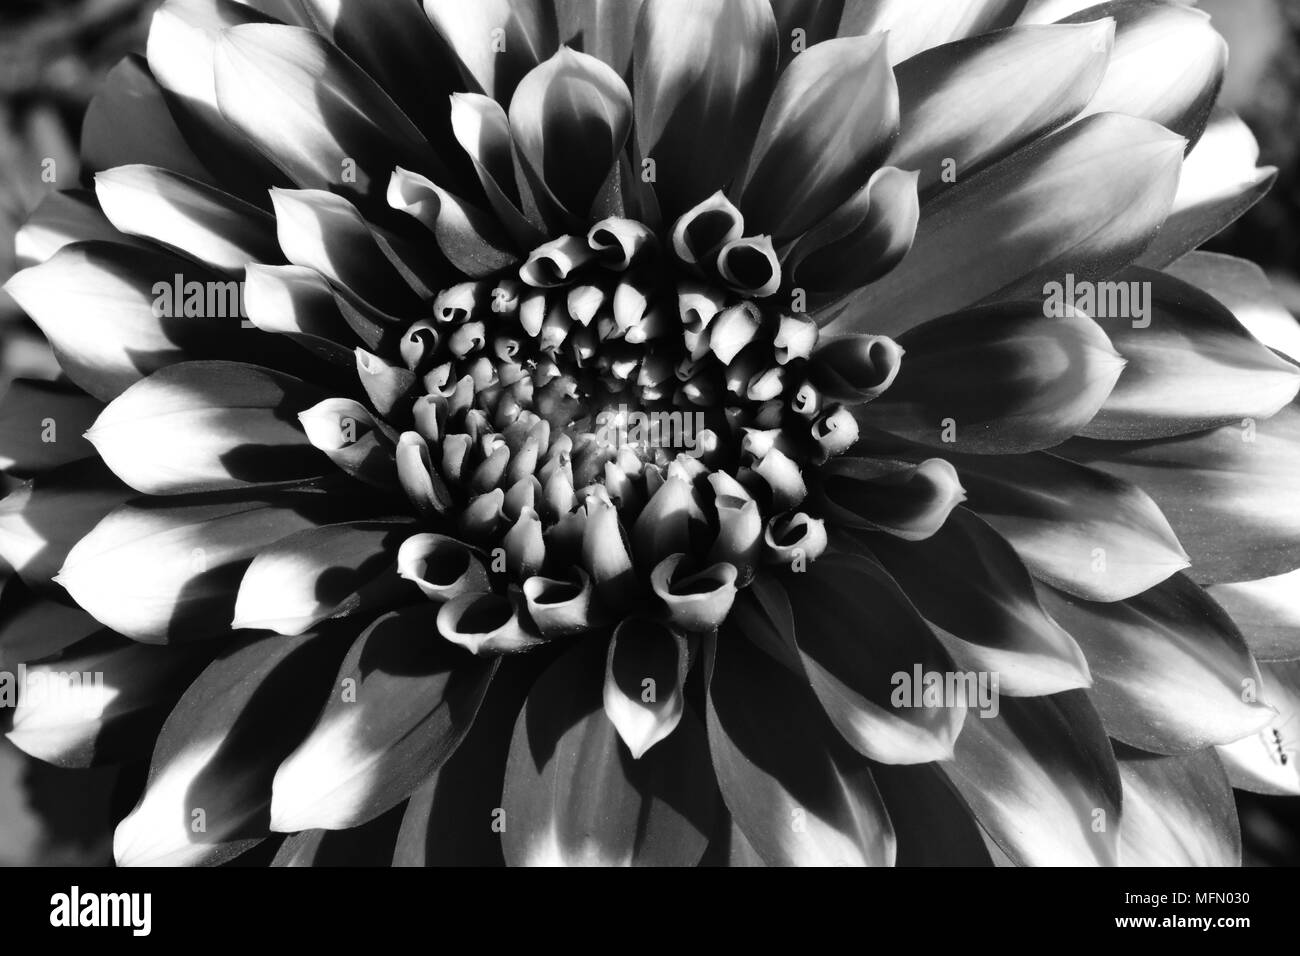 White Round Flowers Black And White Stock Photos Images Alamy